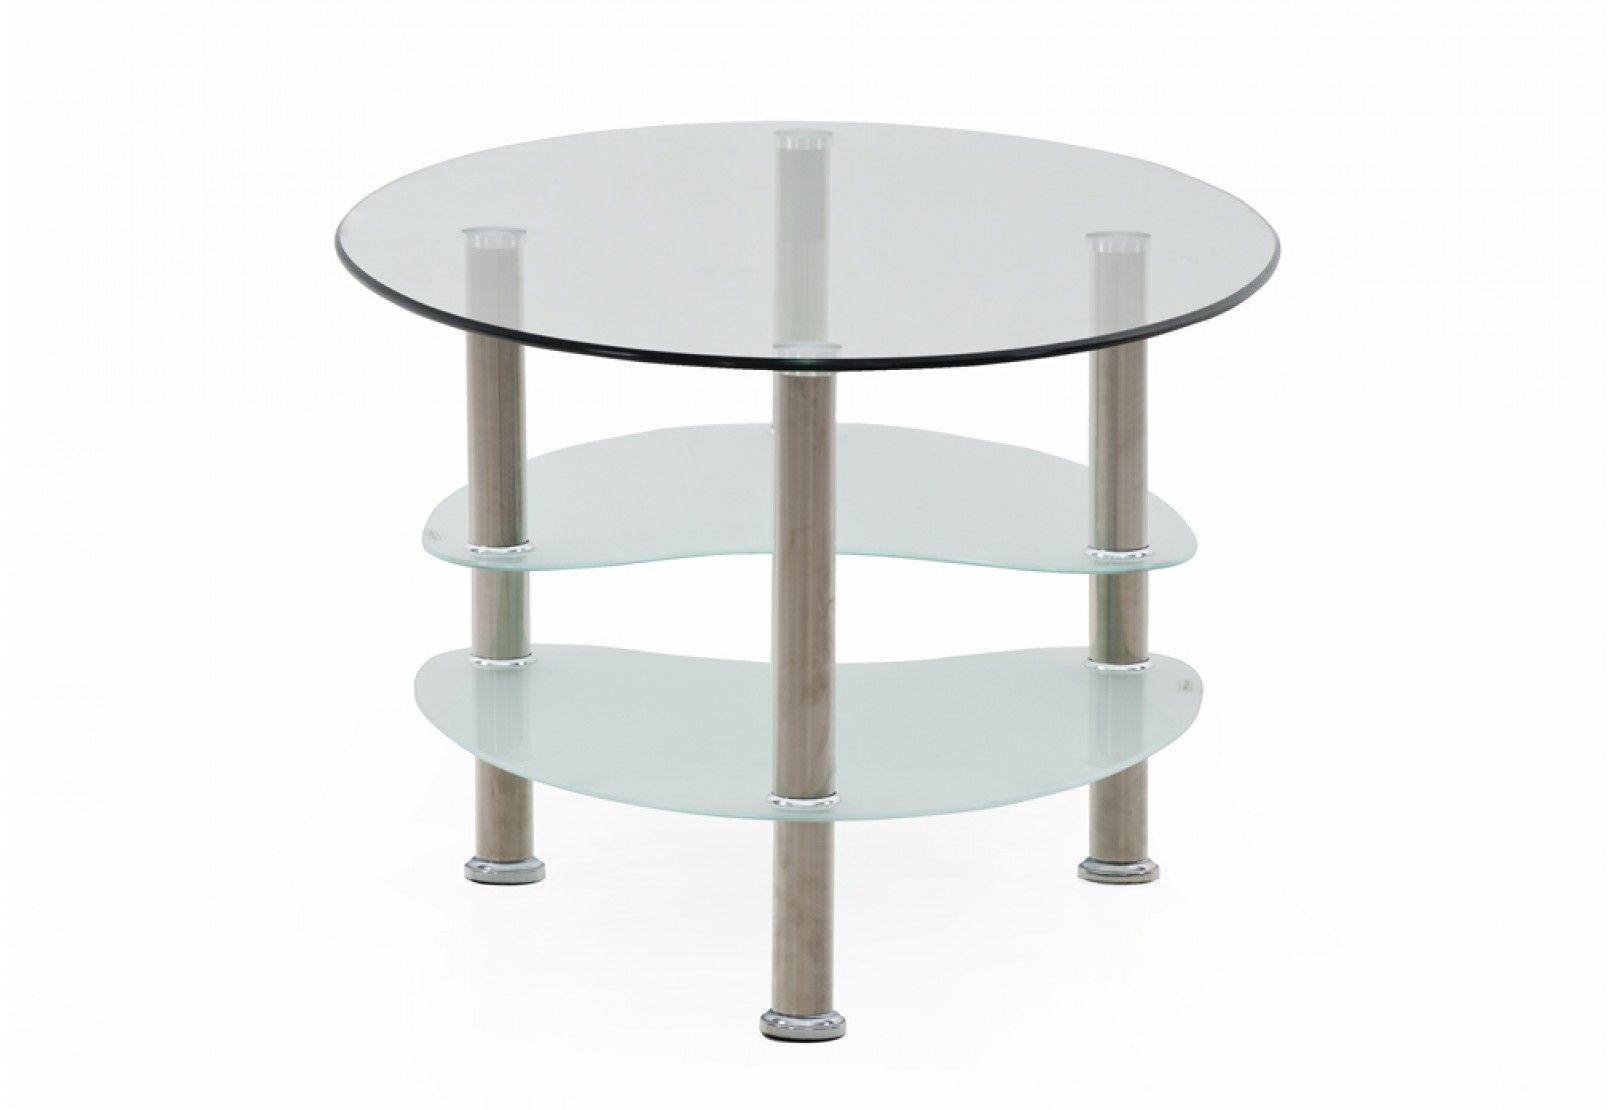 Torelli coffee table super a mart loungedining room torelli coffee table super a mart geotapseo Gallery